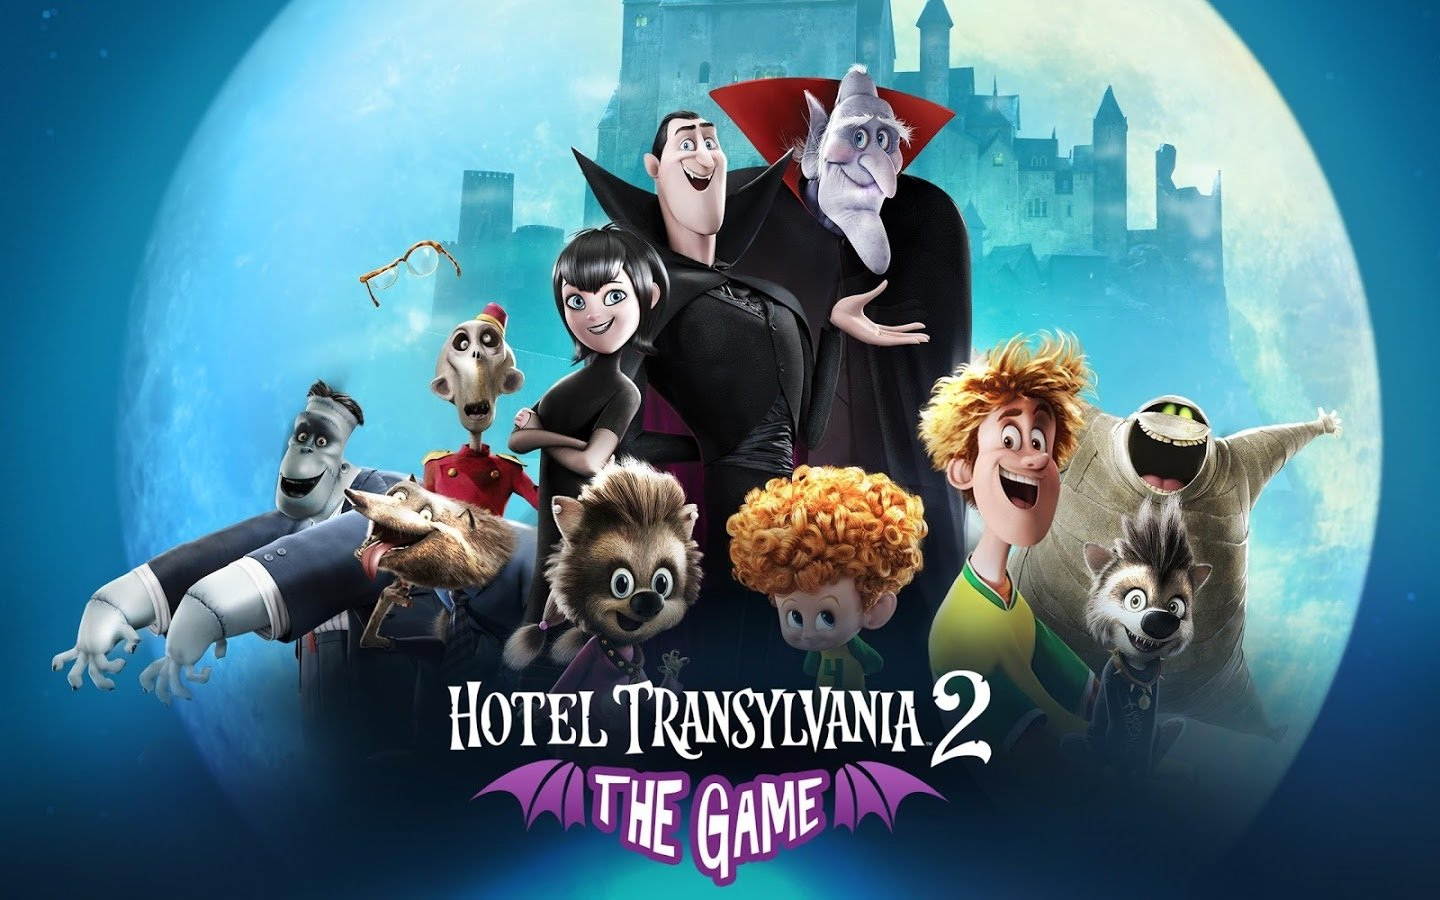 Hotel Transylvania 2 Android image 6